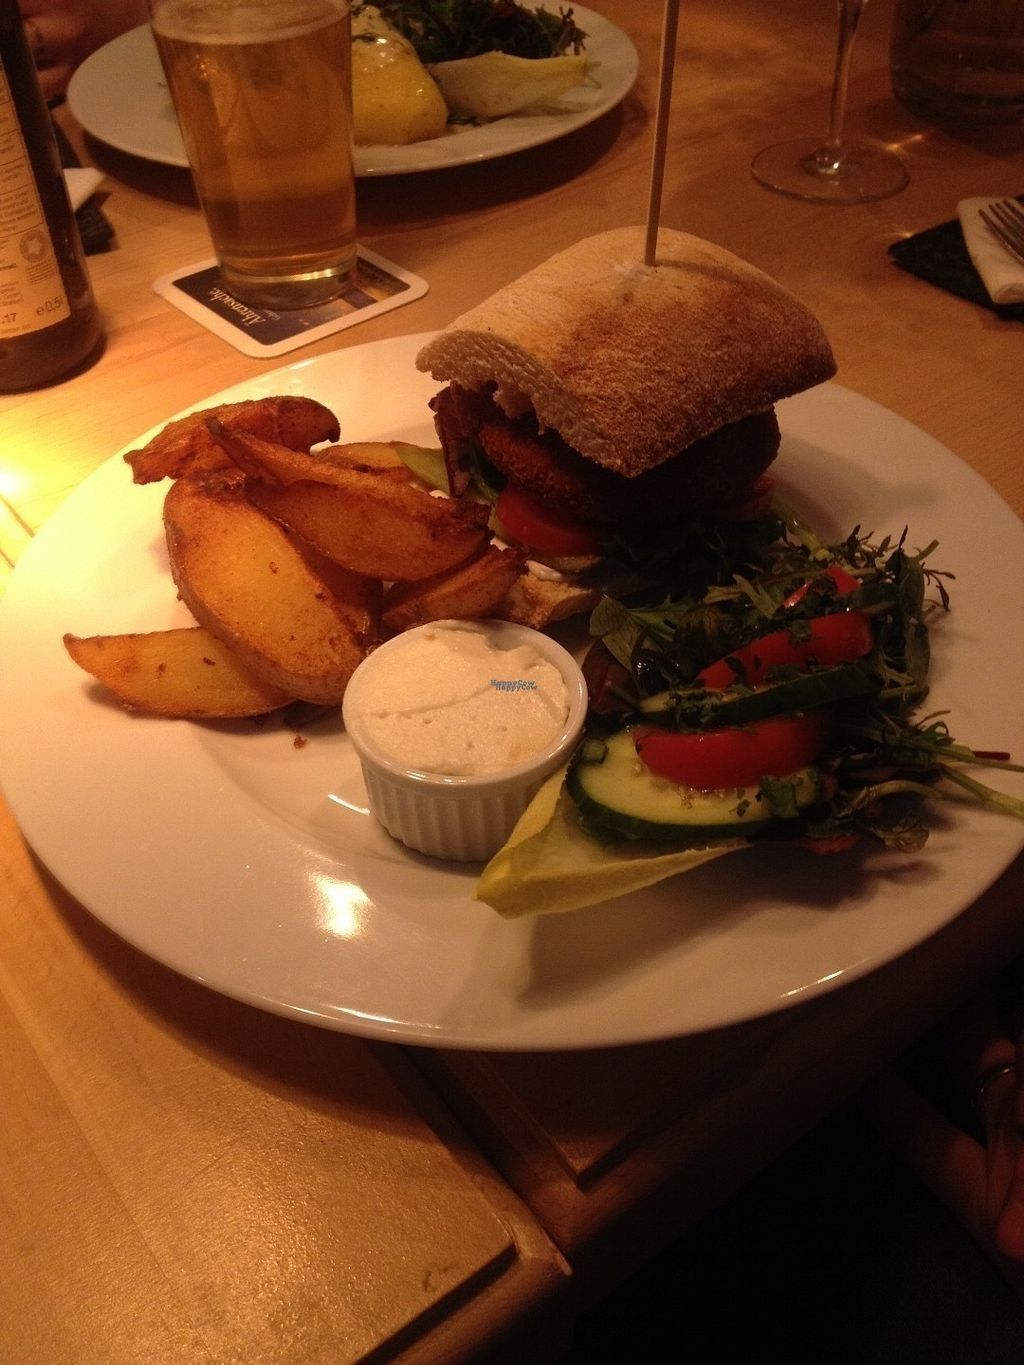 "Photo of Steffenhagen  by <a href=""/members/profile/o0Carolyn0o"">o0Carolyn0o</a> <br/>Special of the week: a beet burger with potato wedges and really tasty aioli. I stole a bite and it was yummy! <br/> October 4, 2016  - <a href='/contact/abuse/image/71550/179701'>Report</a>"